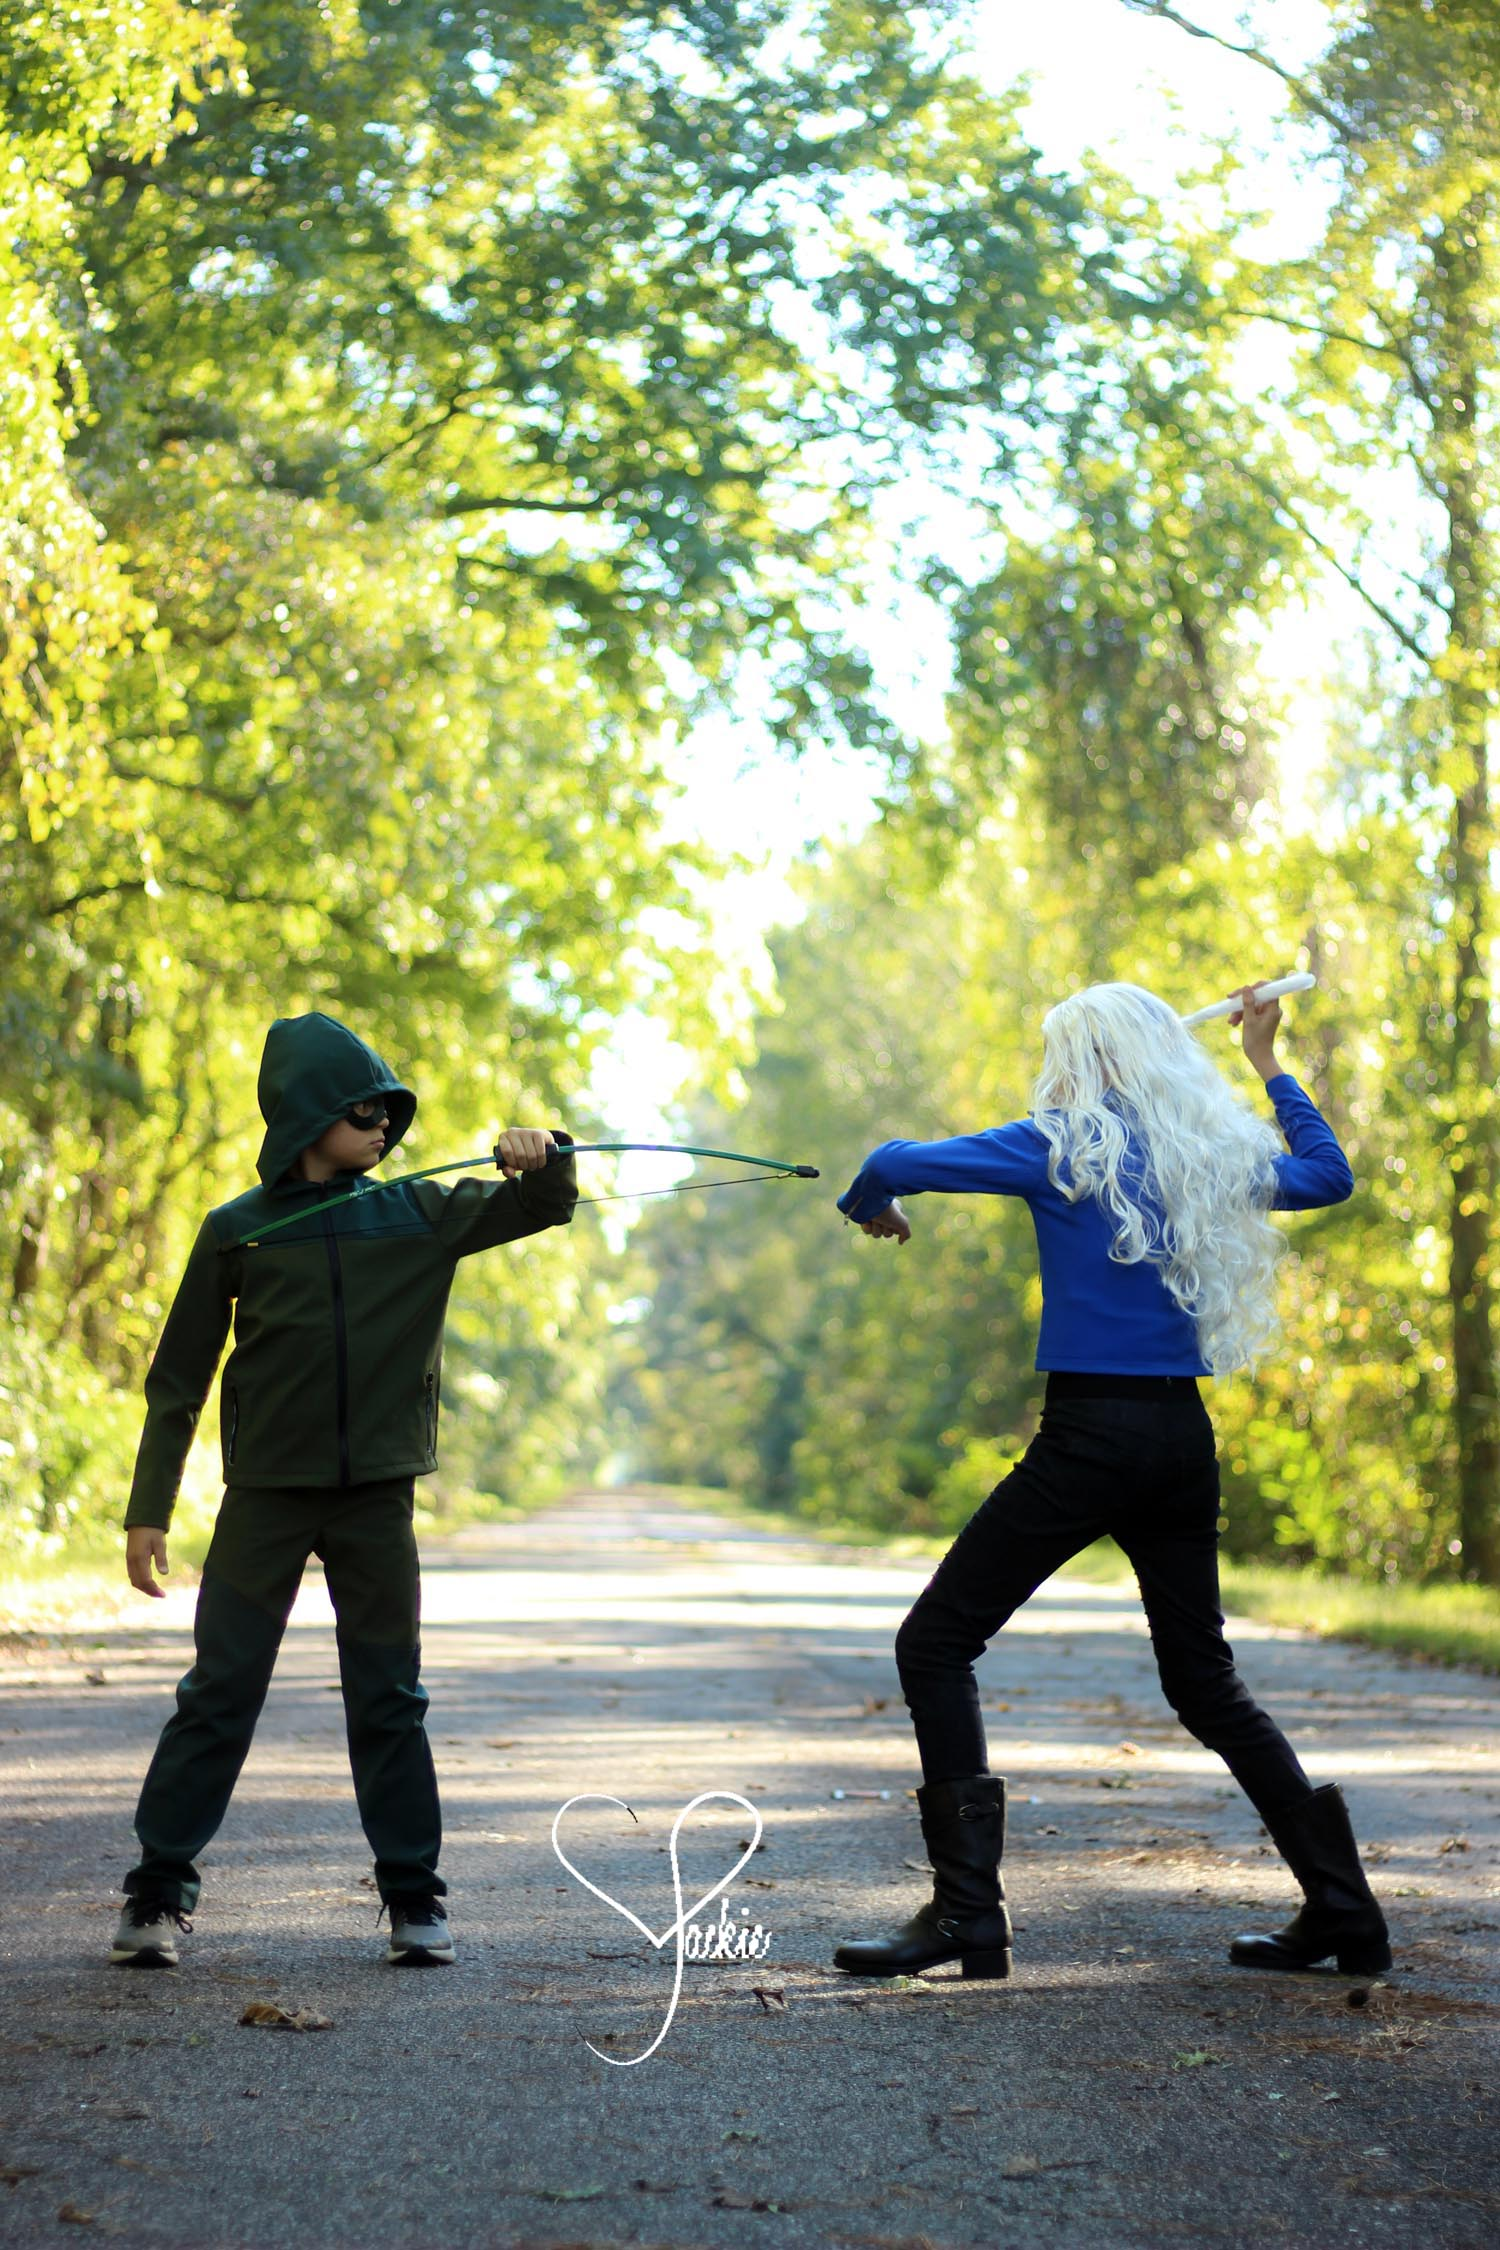 JB_Killer Frost _ Green Arrow_9354_.jpg